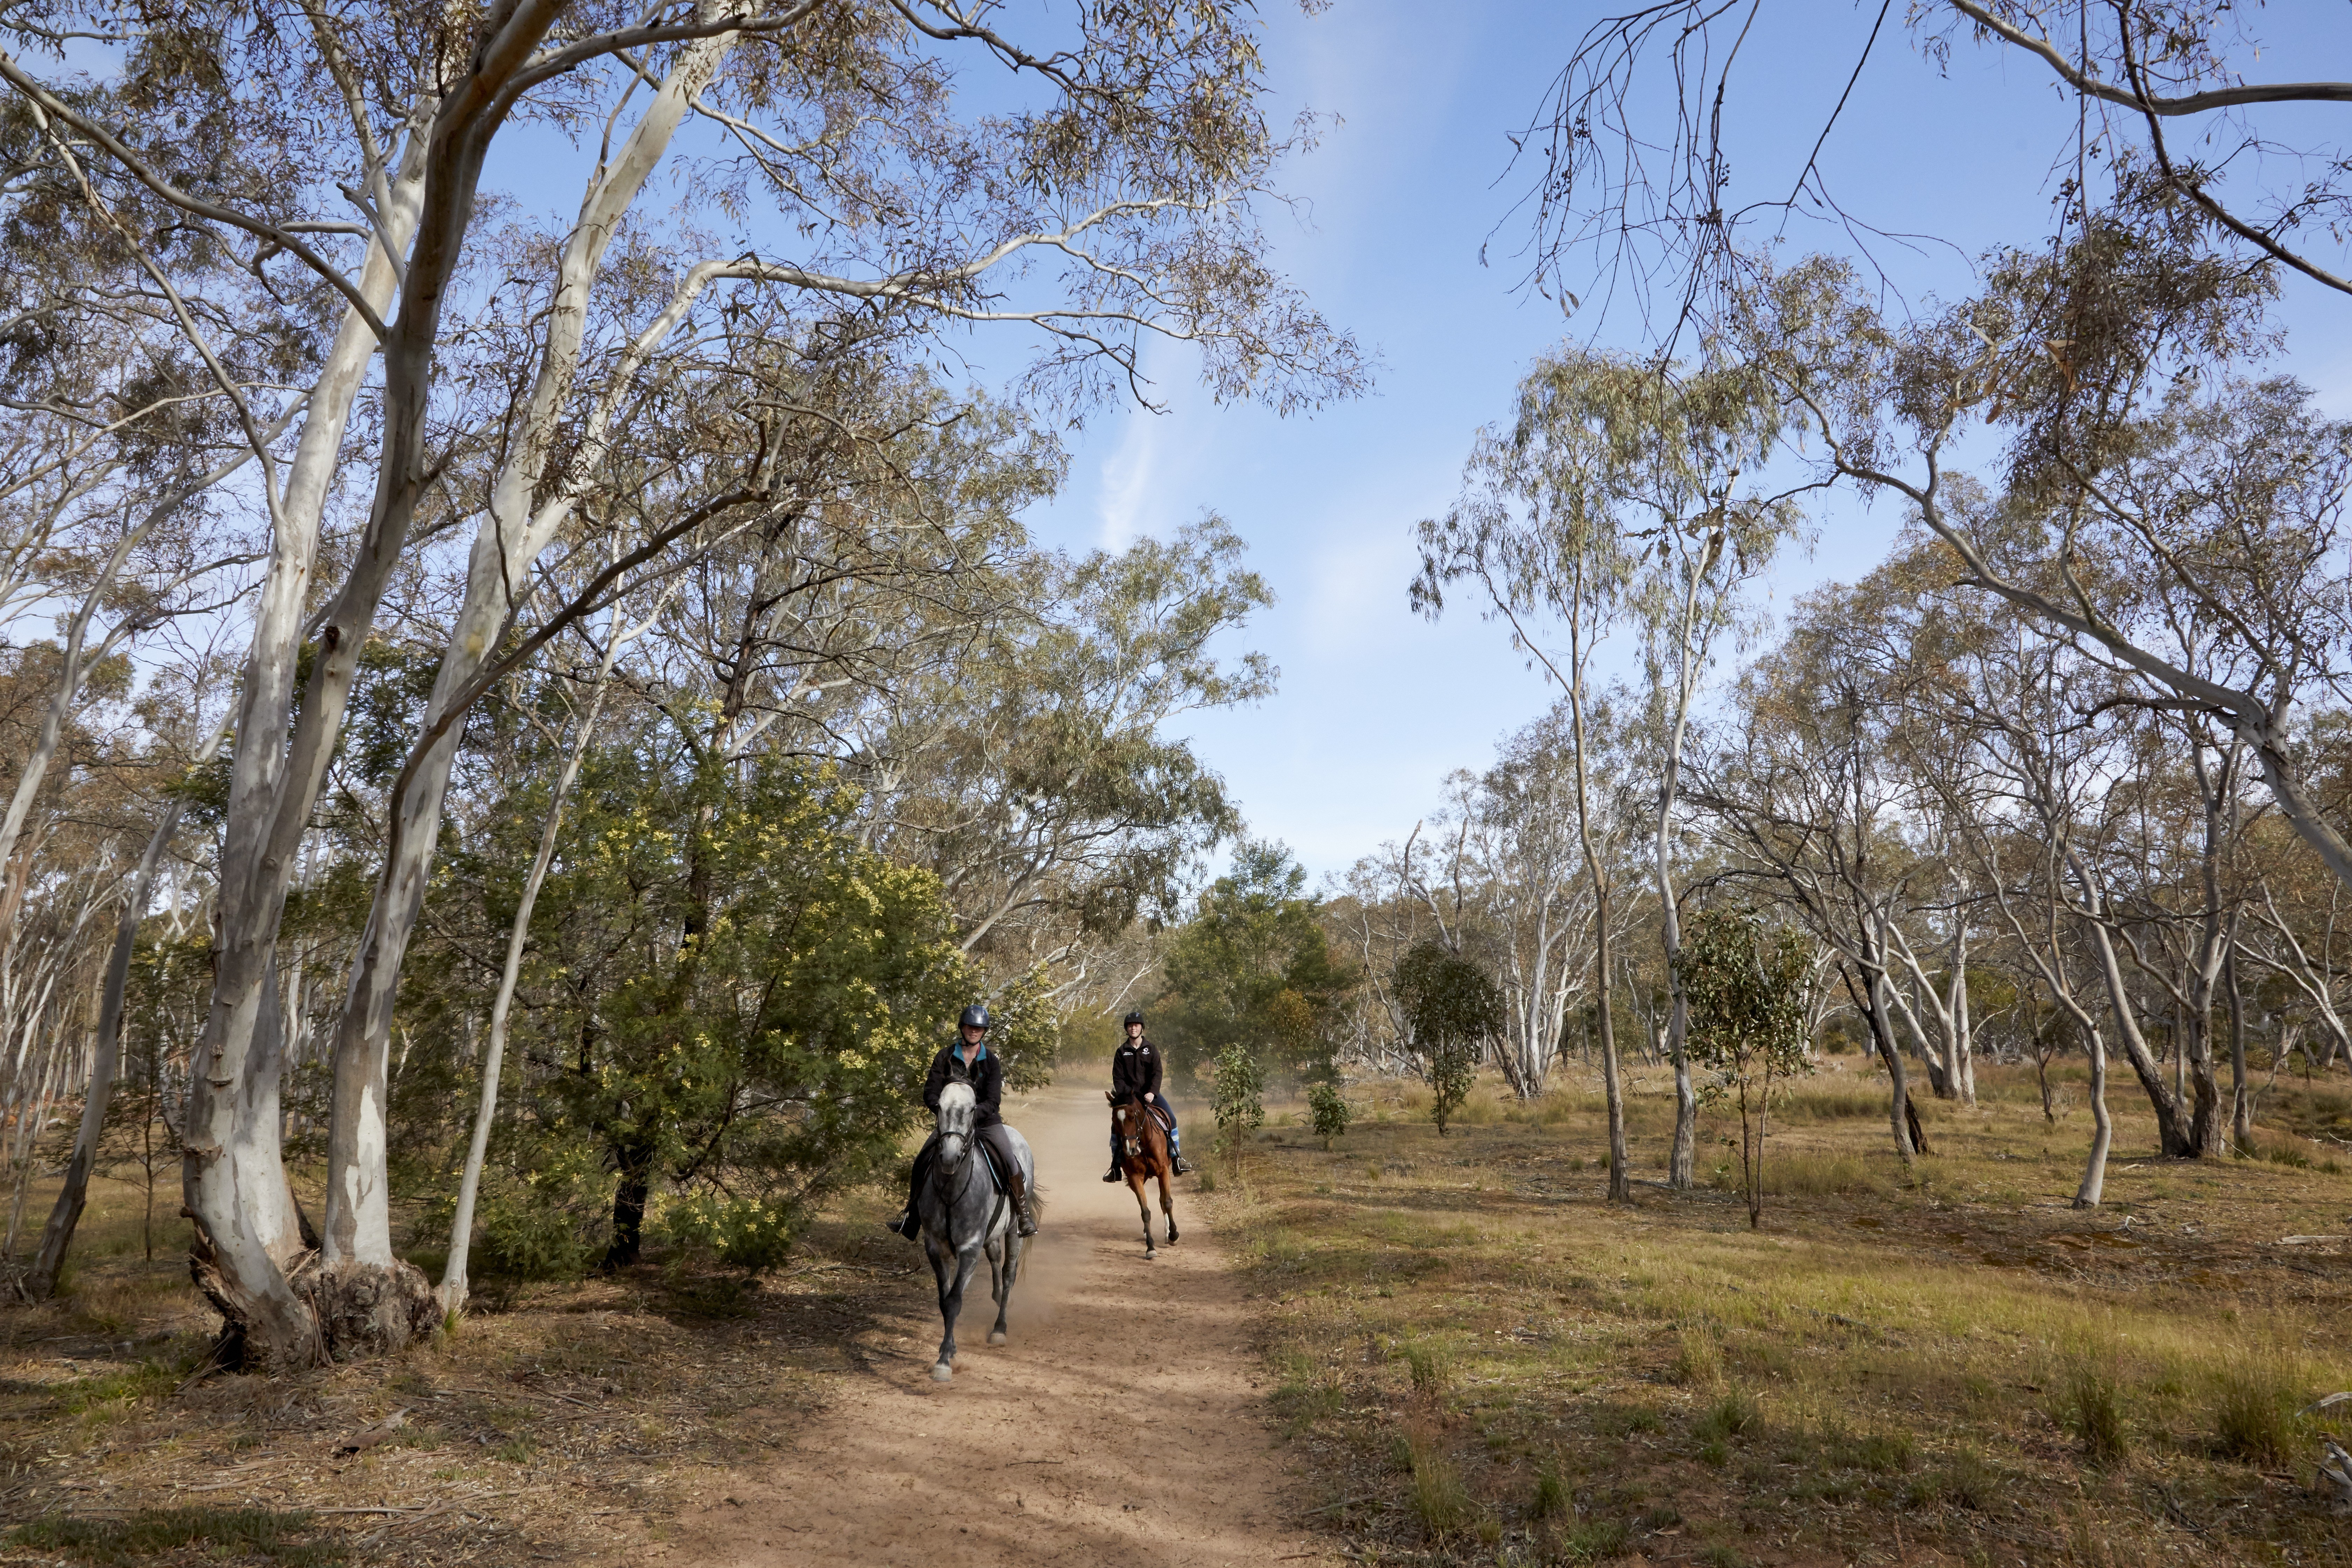 This image is of two people riding horses in one of the horse riding tracks at the You Yangs.